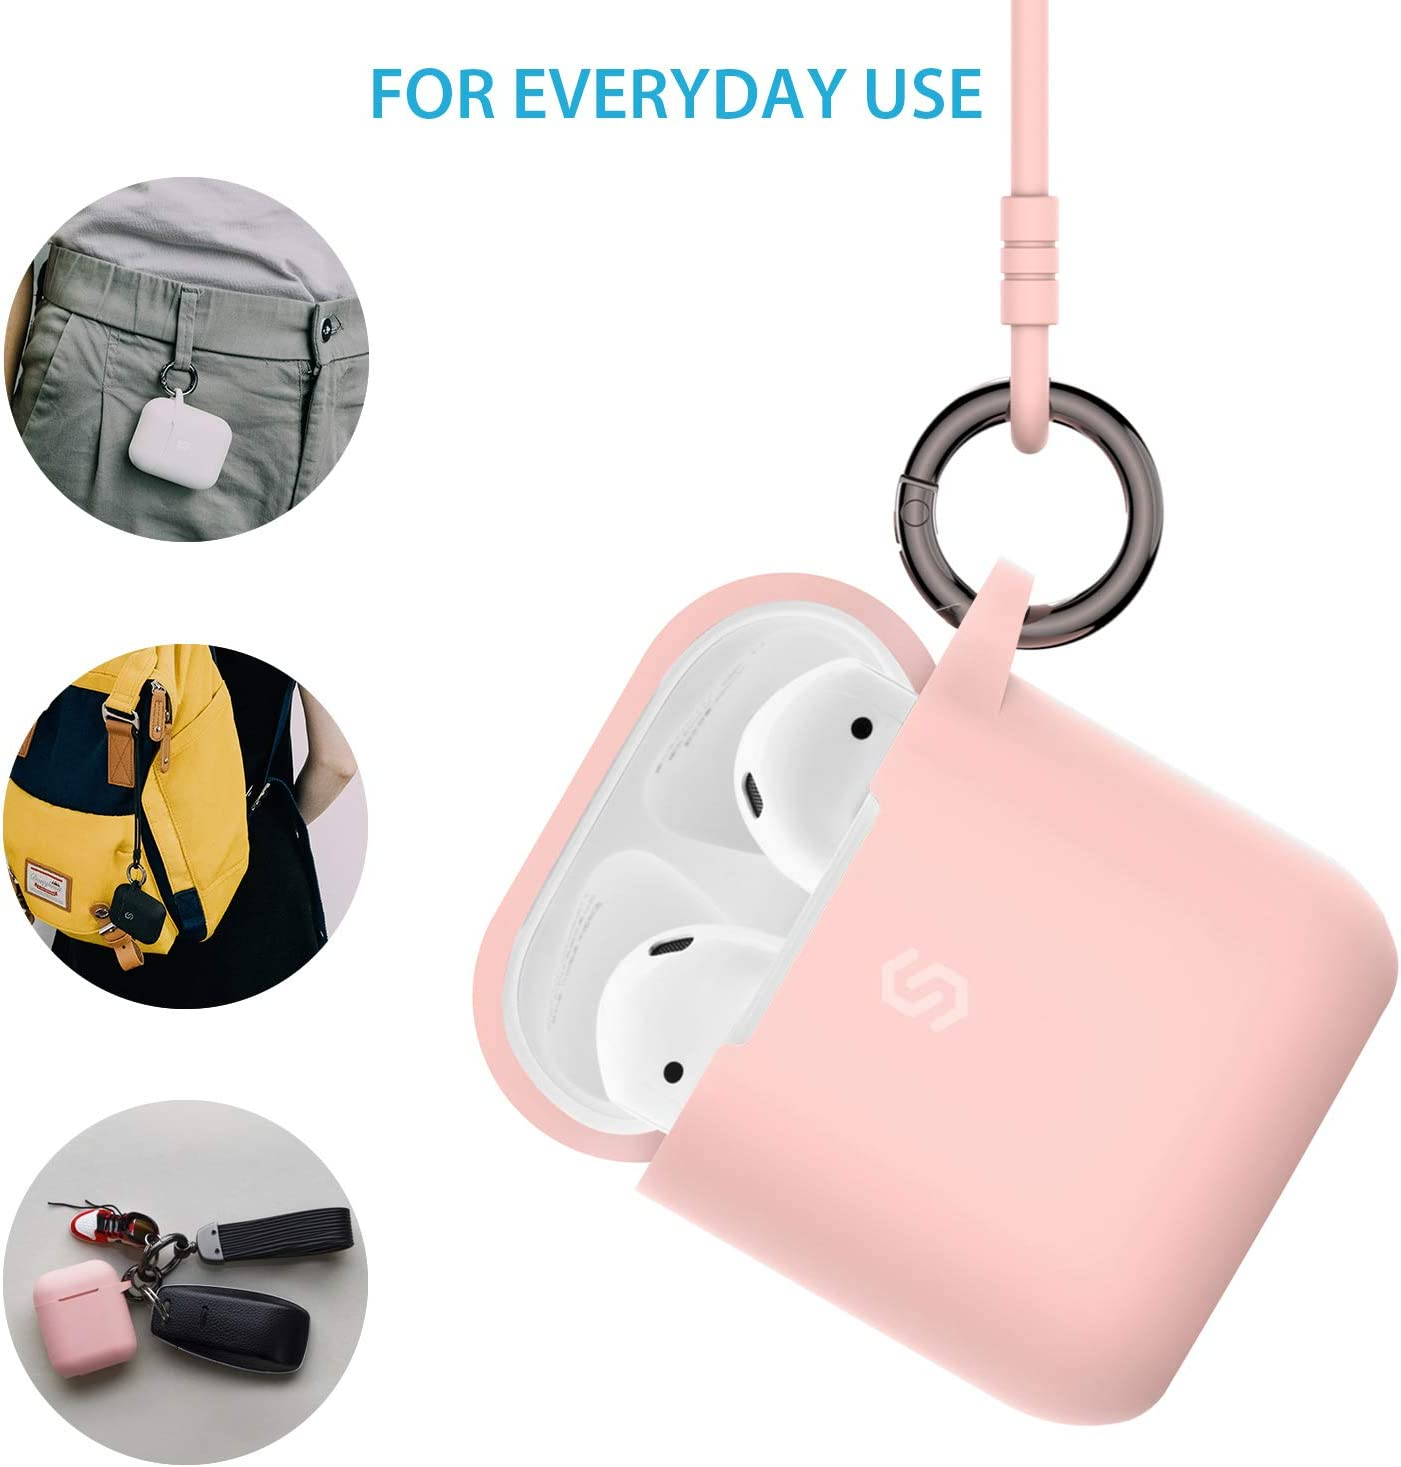 Syncwire Full Protective AirPods Case Front LED Visible Cover for Airpods 2 /& 1 Waterproof /& Shockproof Pink Ultra Soft Flexible /& Premium Durable Silicone Skin Case with Keychain